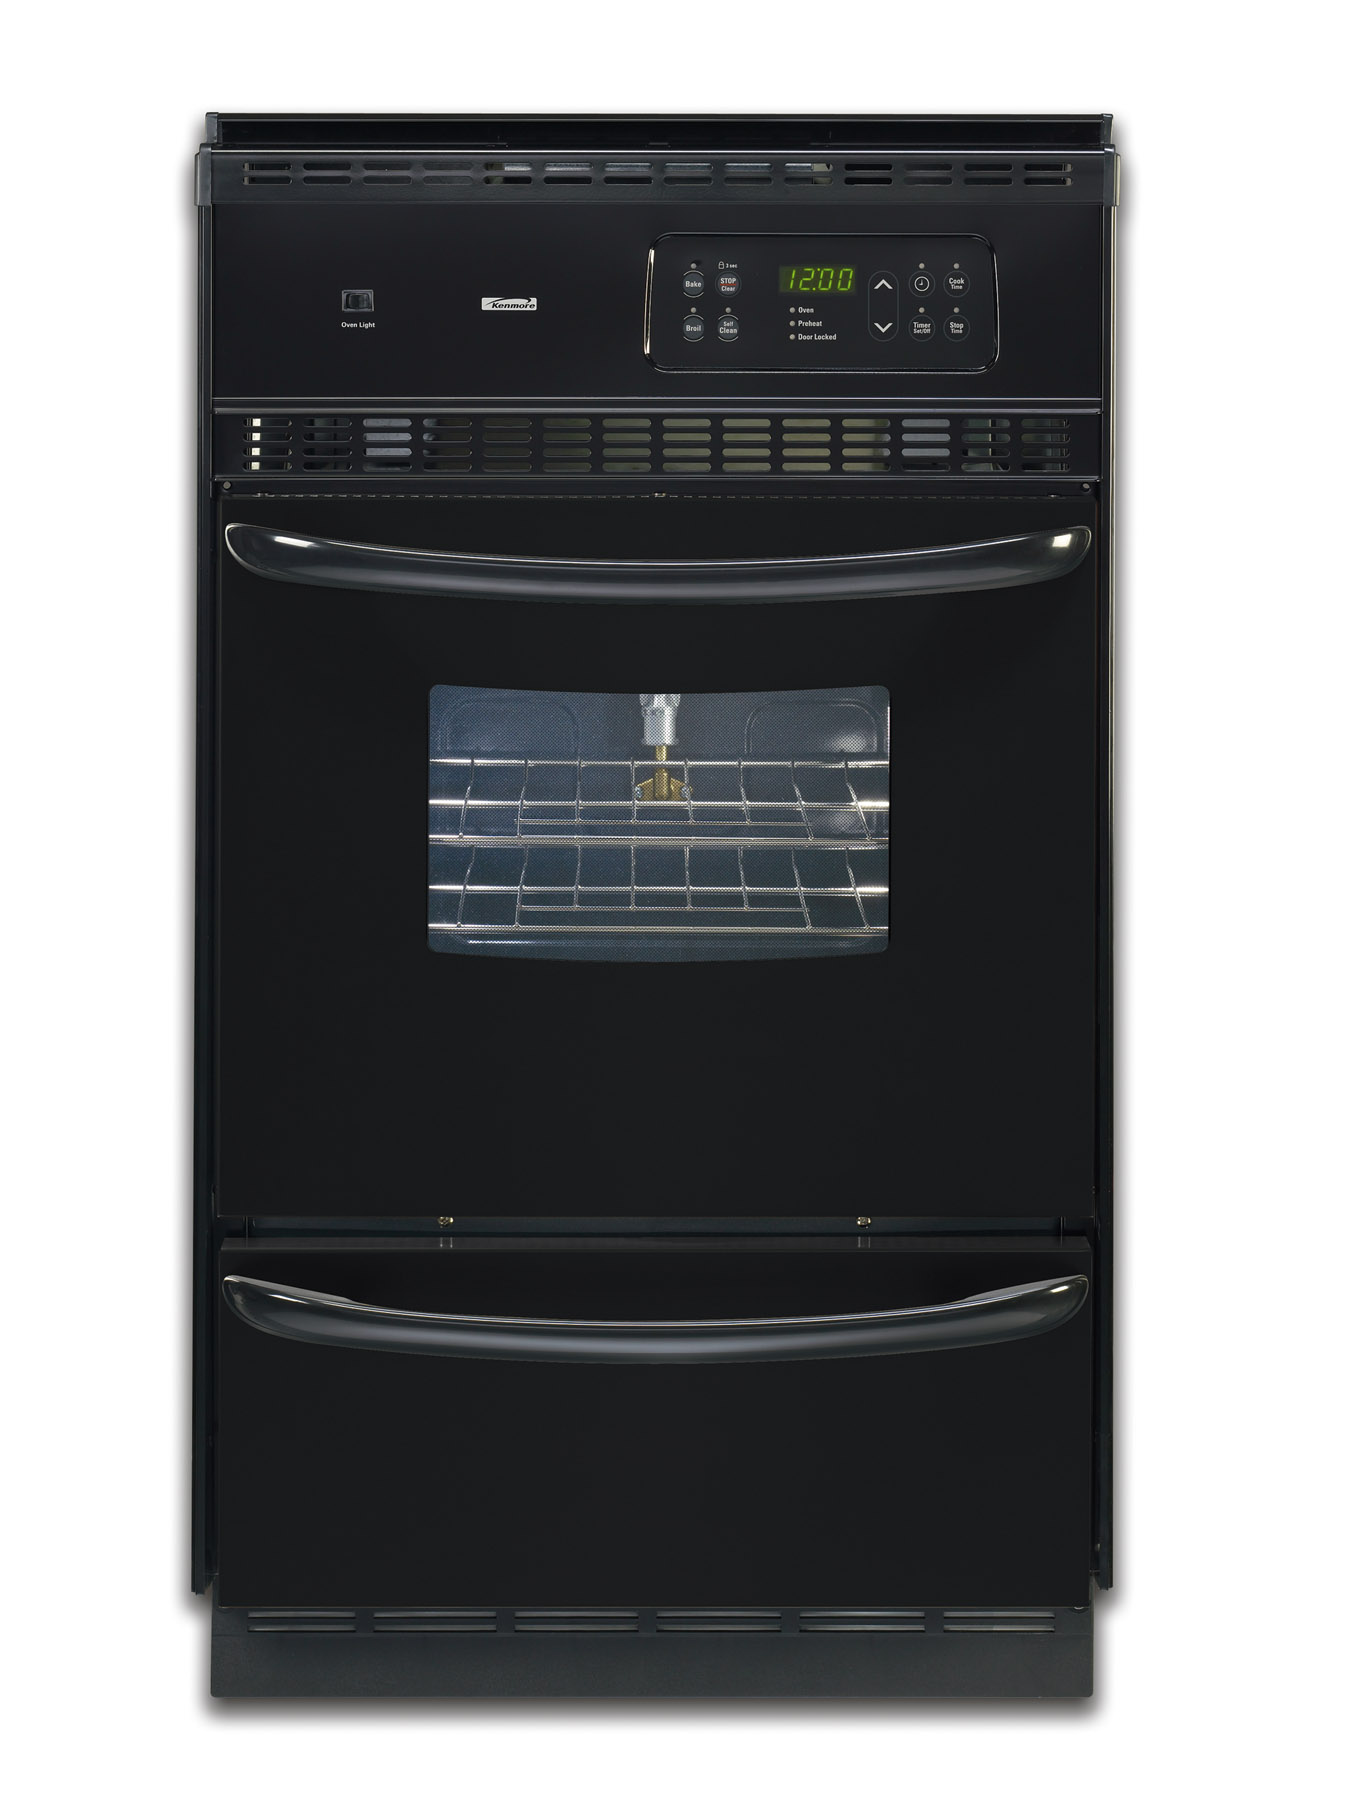 24 Outlet Kenmore 30559 24 Quot Gas Wall Oven Sears Outlet